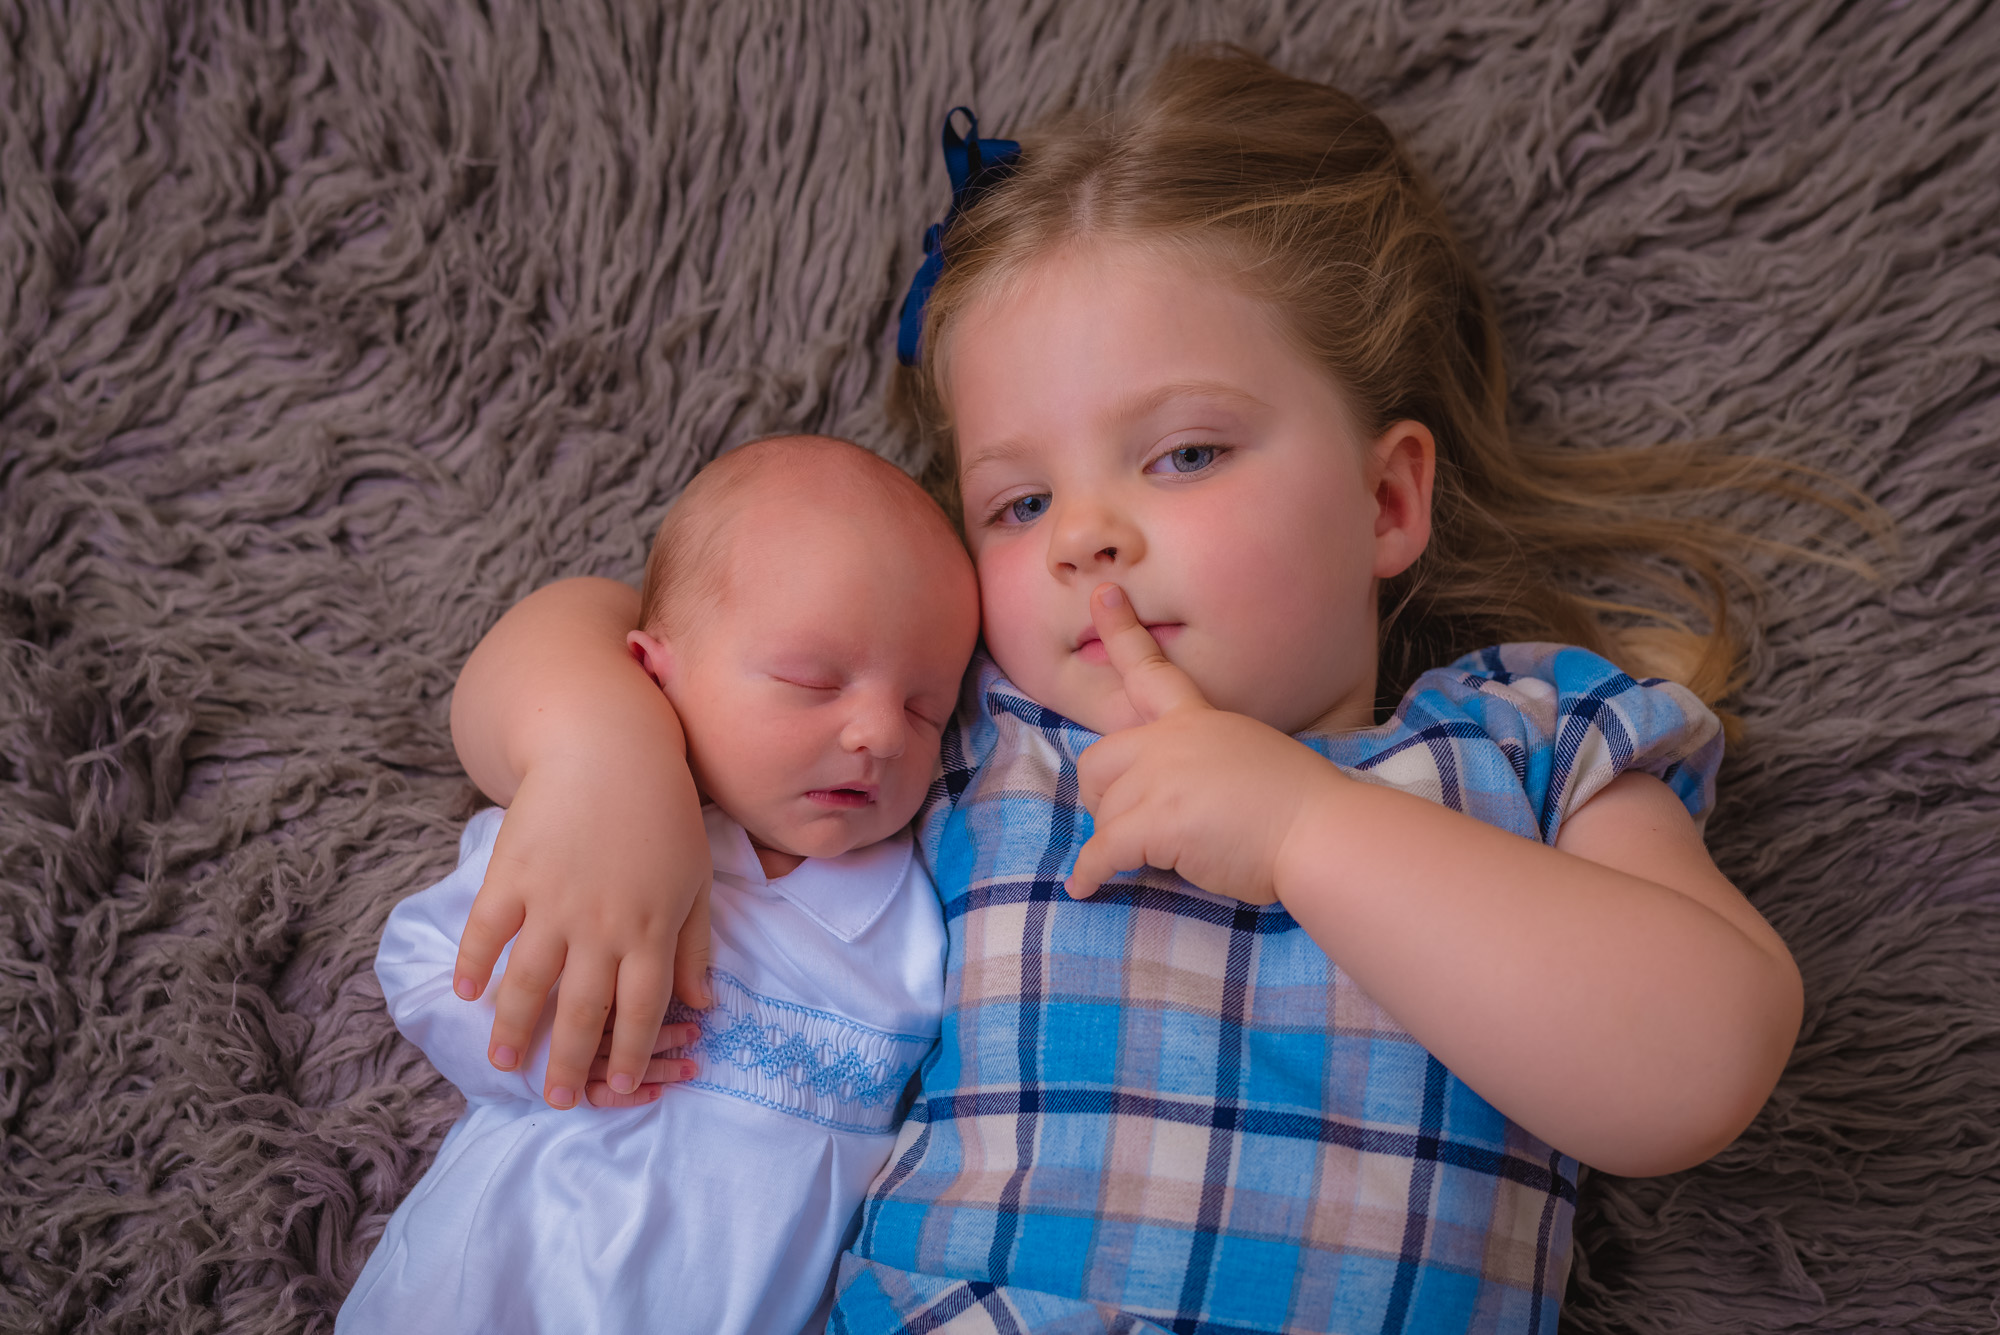 A young boy poses with her newborn baby brother.